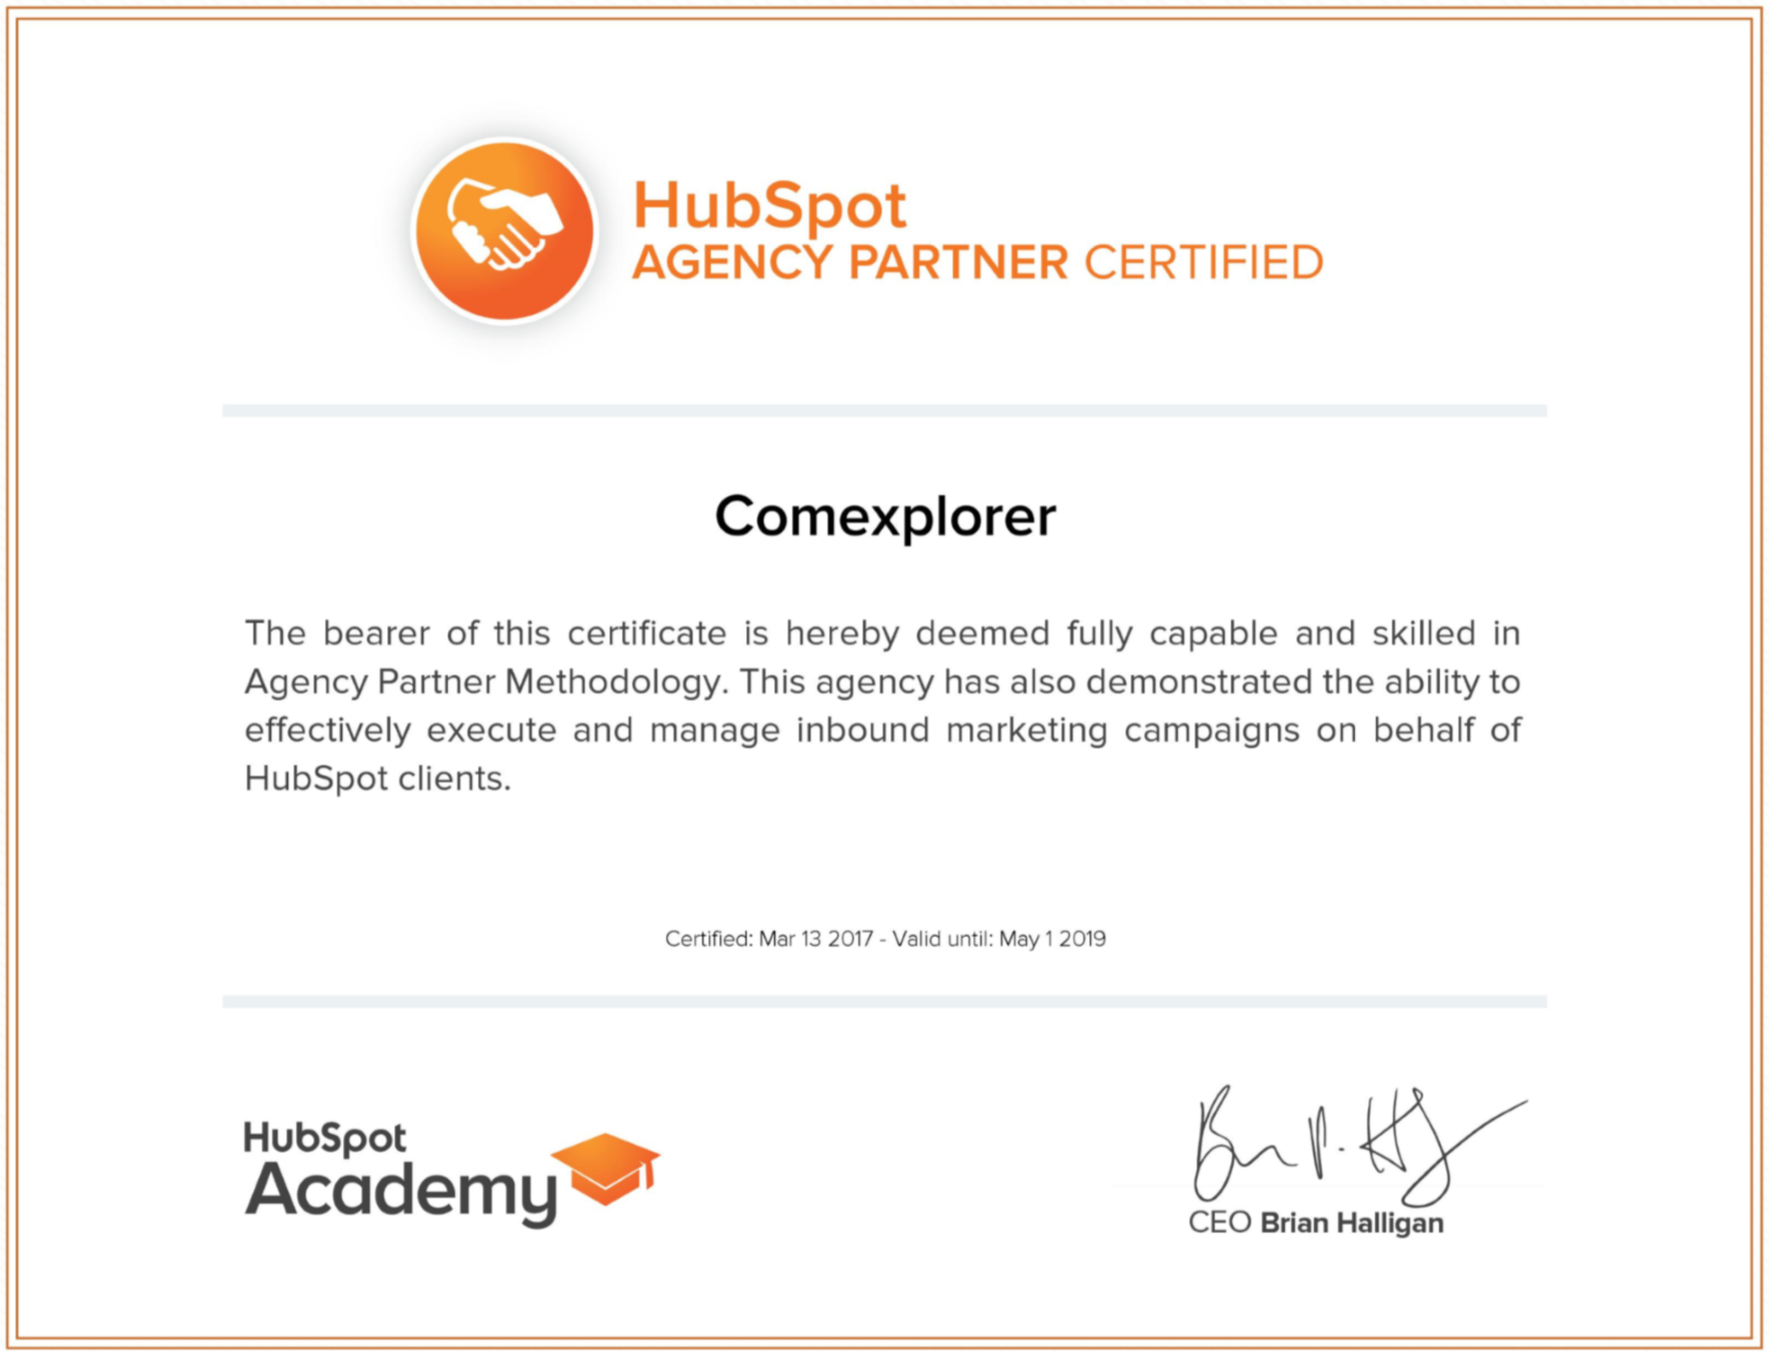 Certification Hubspot Partner ComExplorer